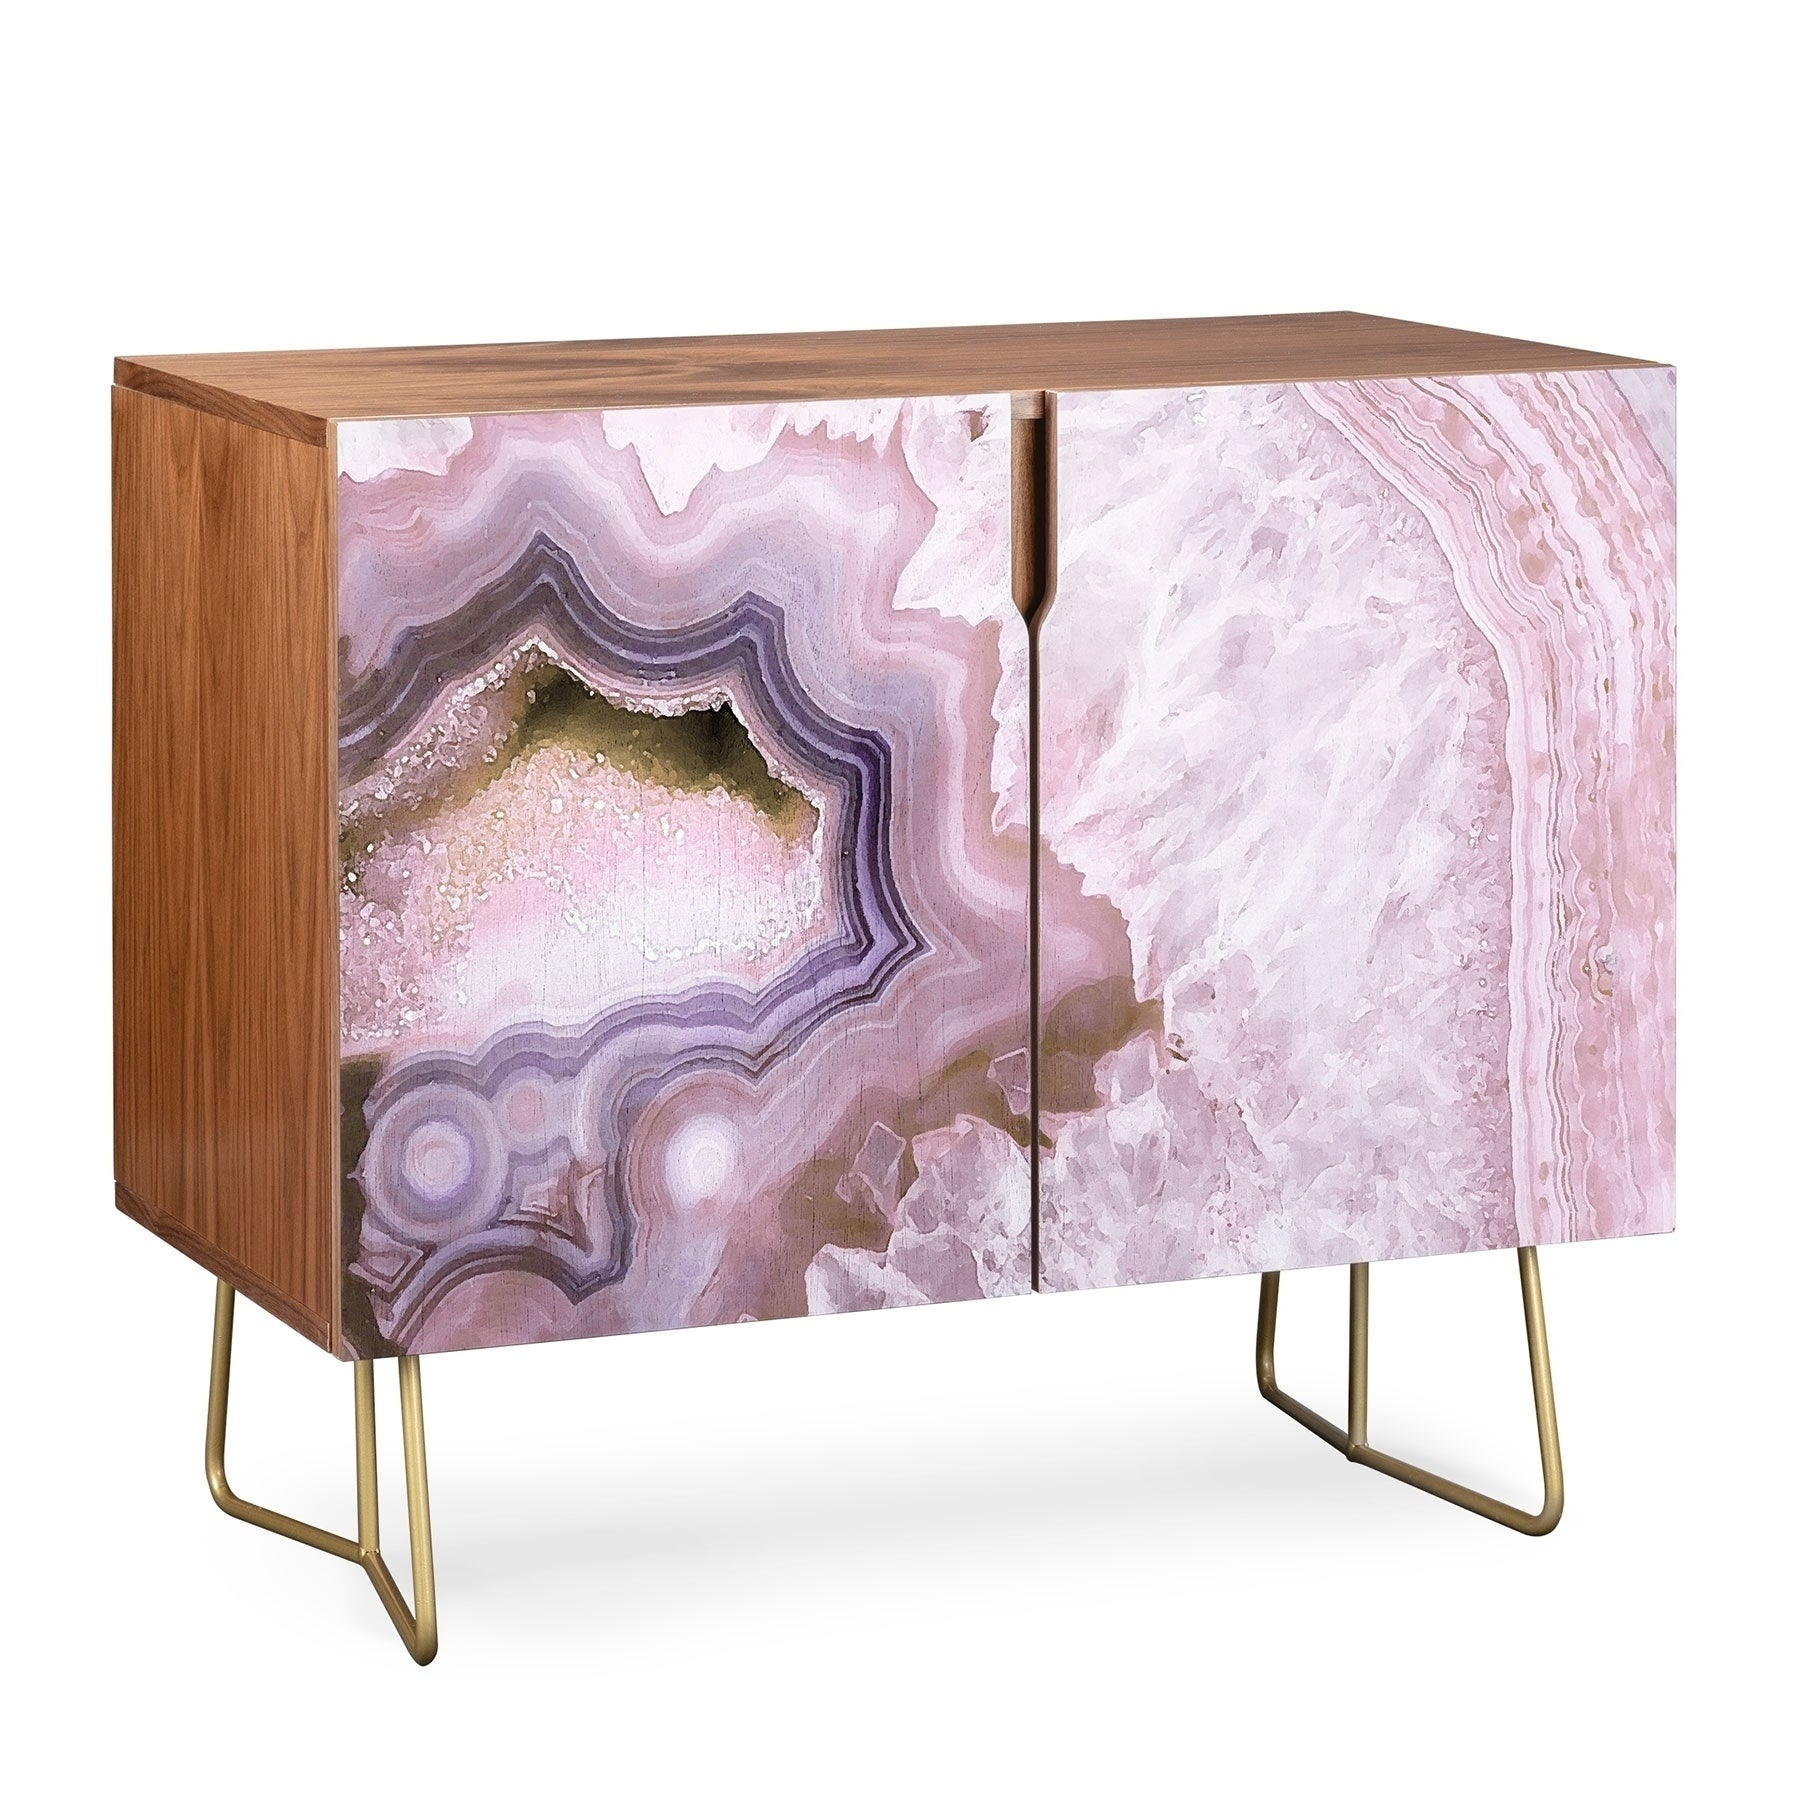 Deny Designs Pale Pink Agate Wood Credenza (3 Leg Options) Inside Pale Pink Agate Wood Credenzas (Photo 2 of 30)